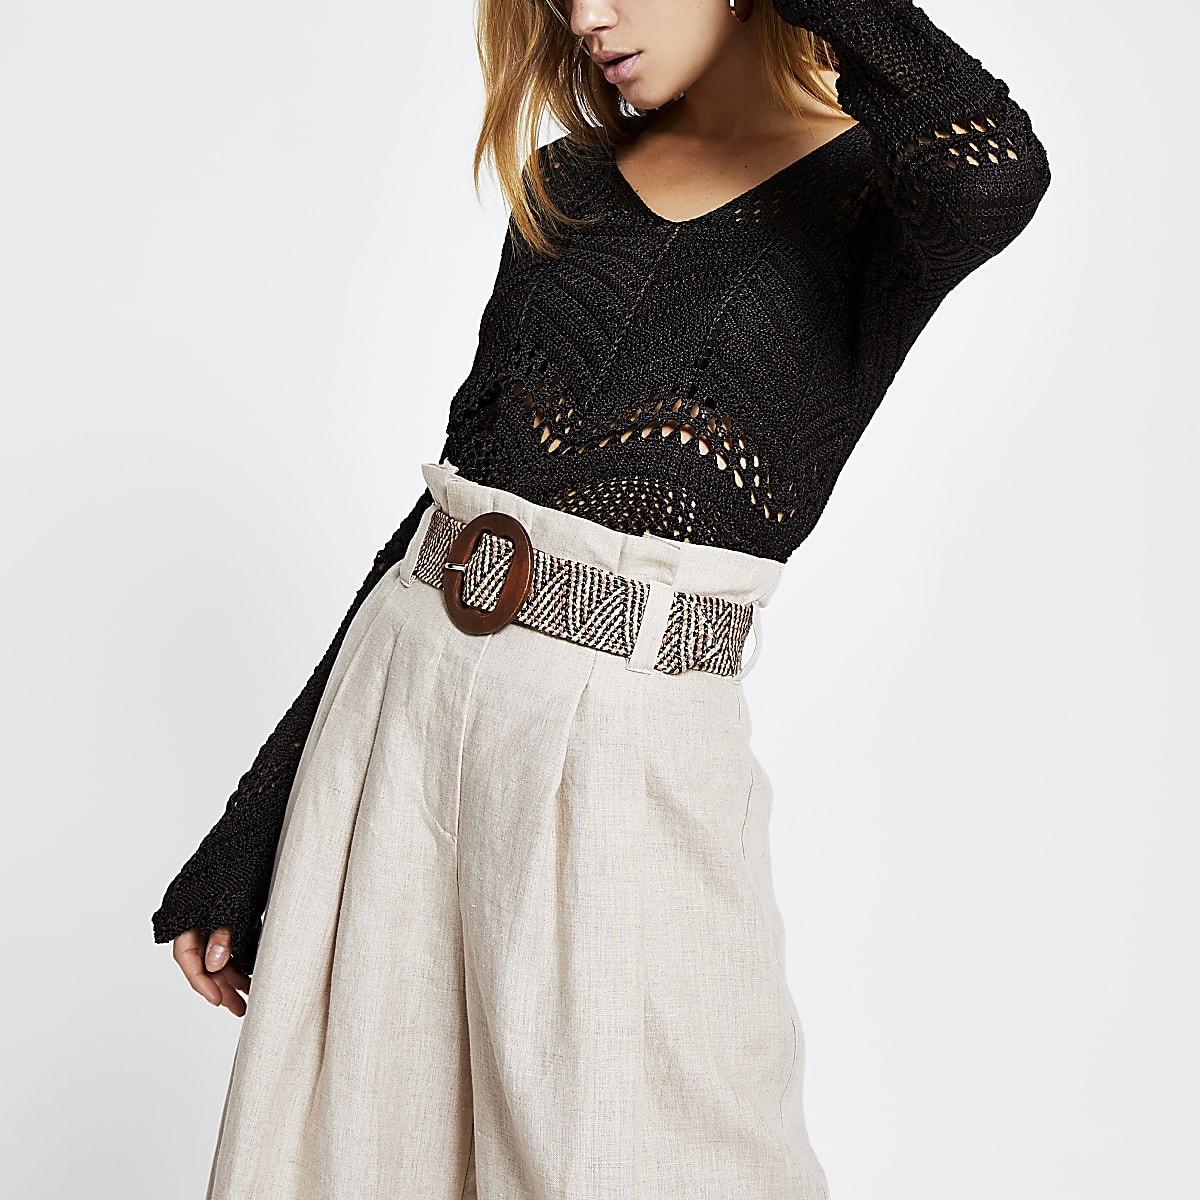 Brown crochet long sleeve top